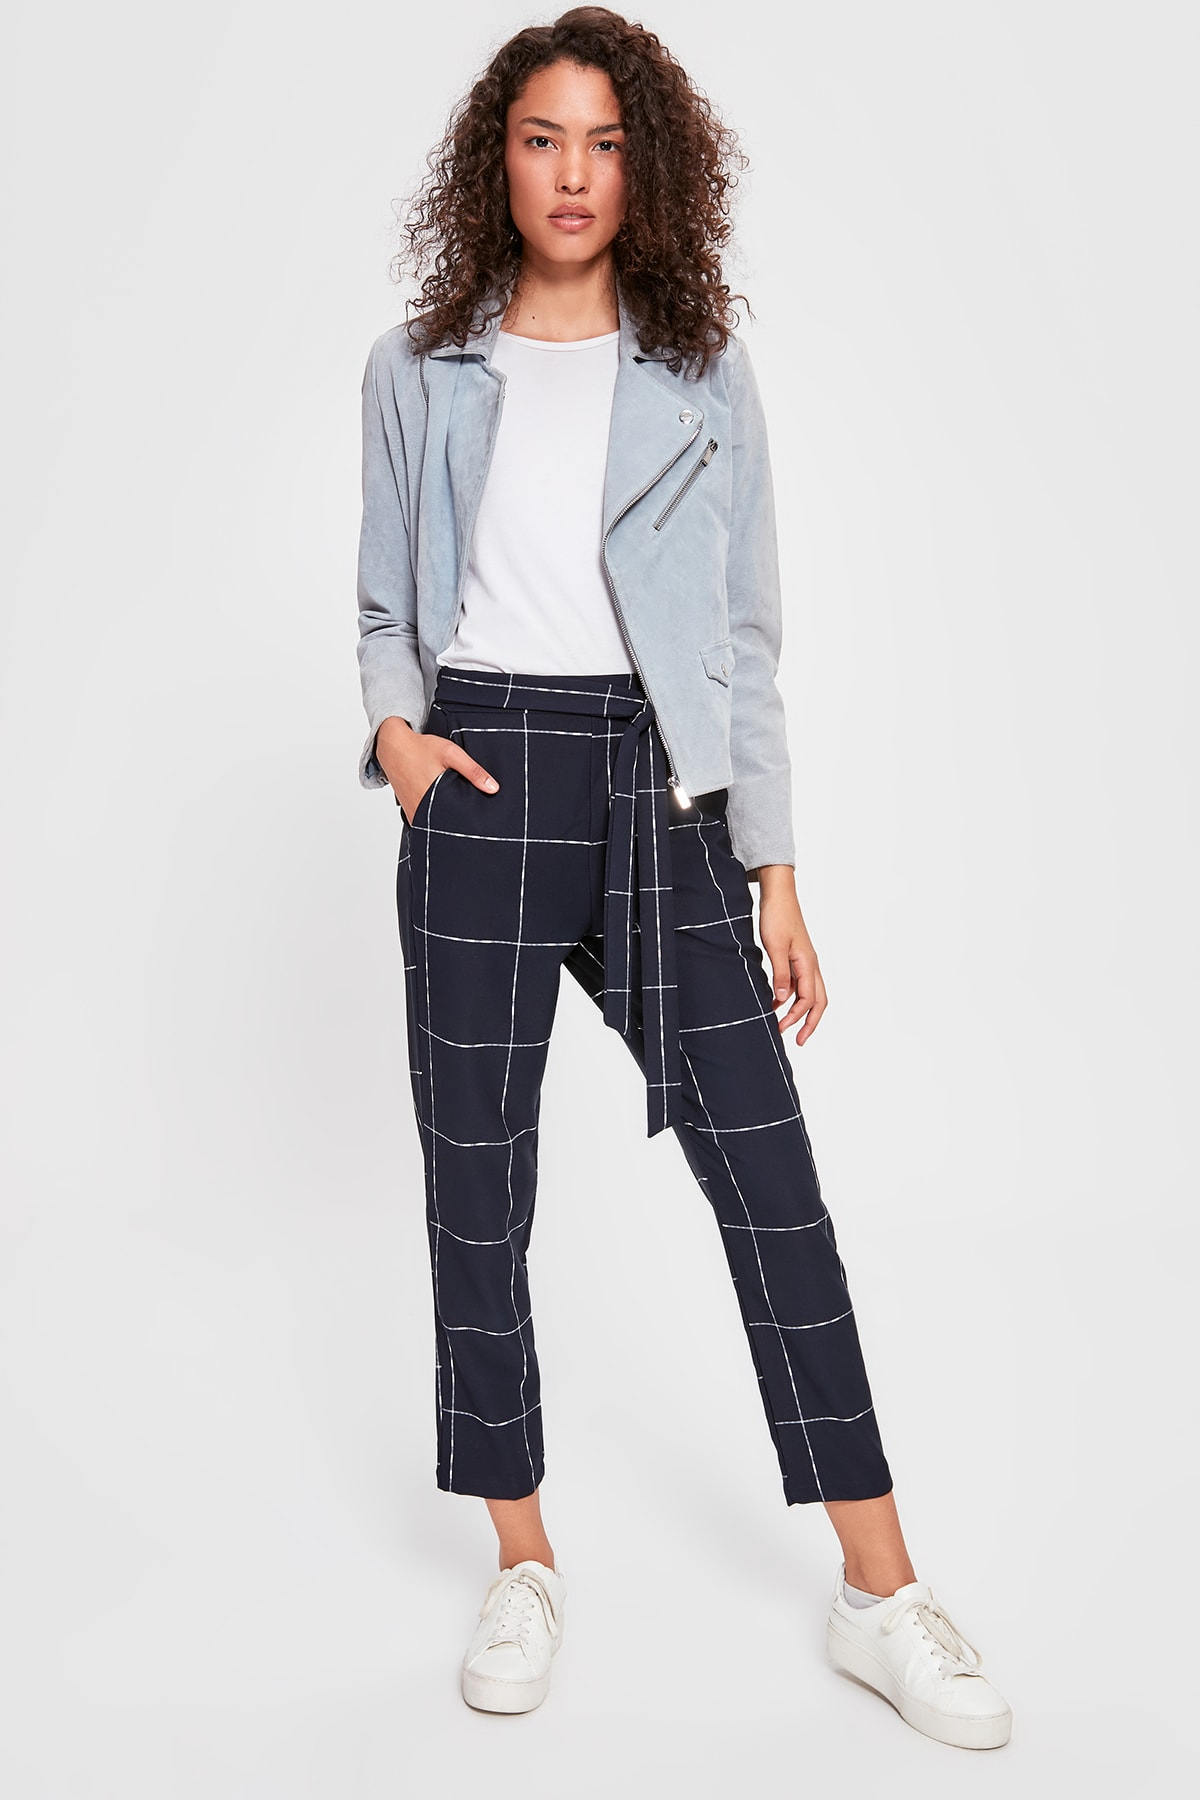 Trendyol Dark Blue Lacing Detailed Plaid Pants TWOAW20PL0267